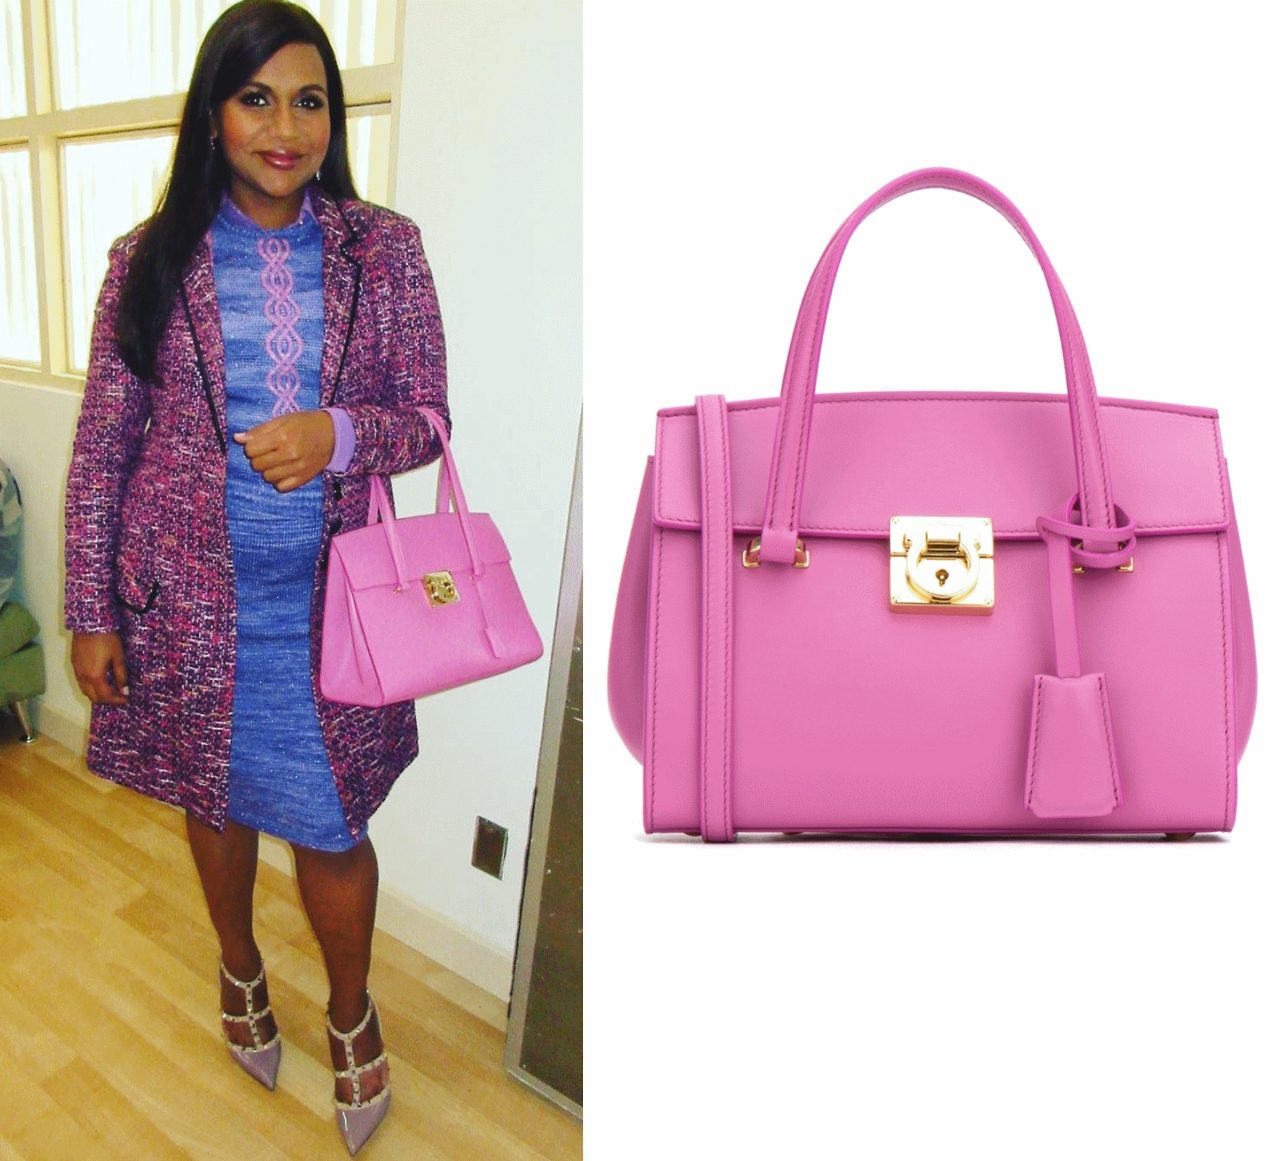 b86d650719 Mindy Lahiri s incredible collection of designer bags is seemingly without  end!